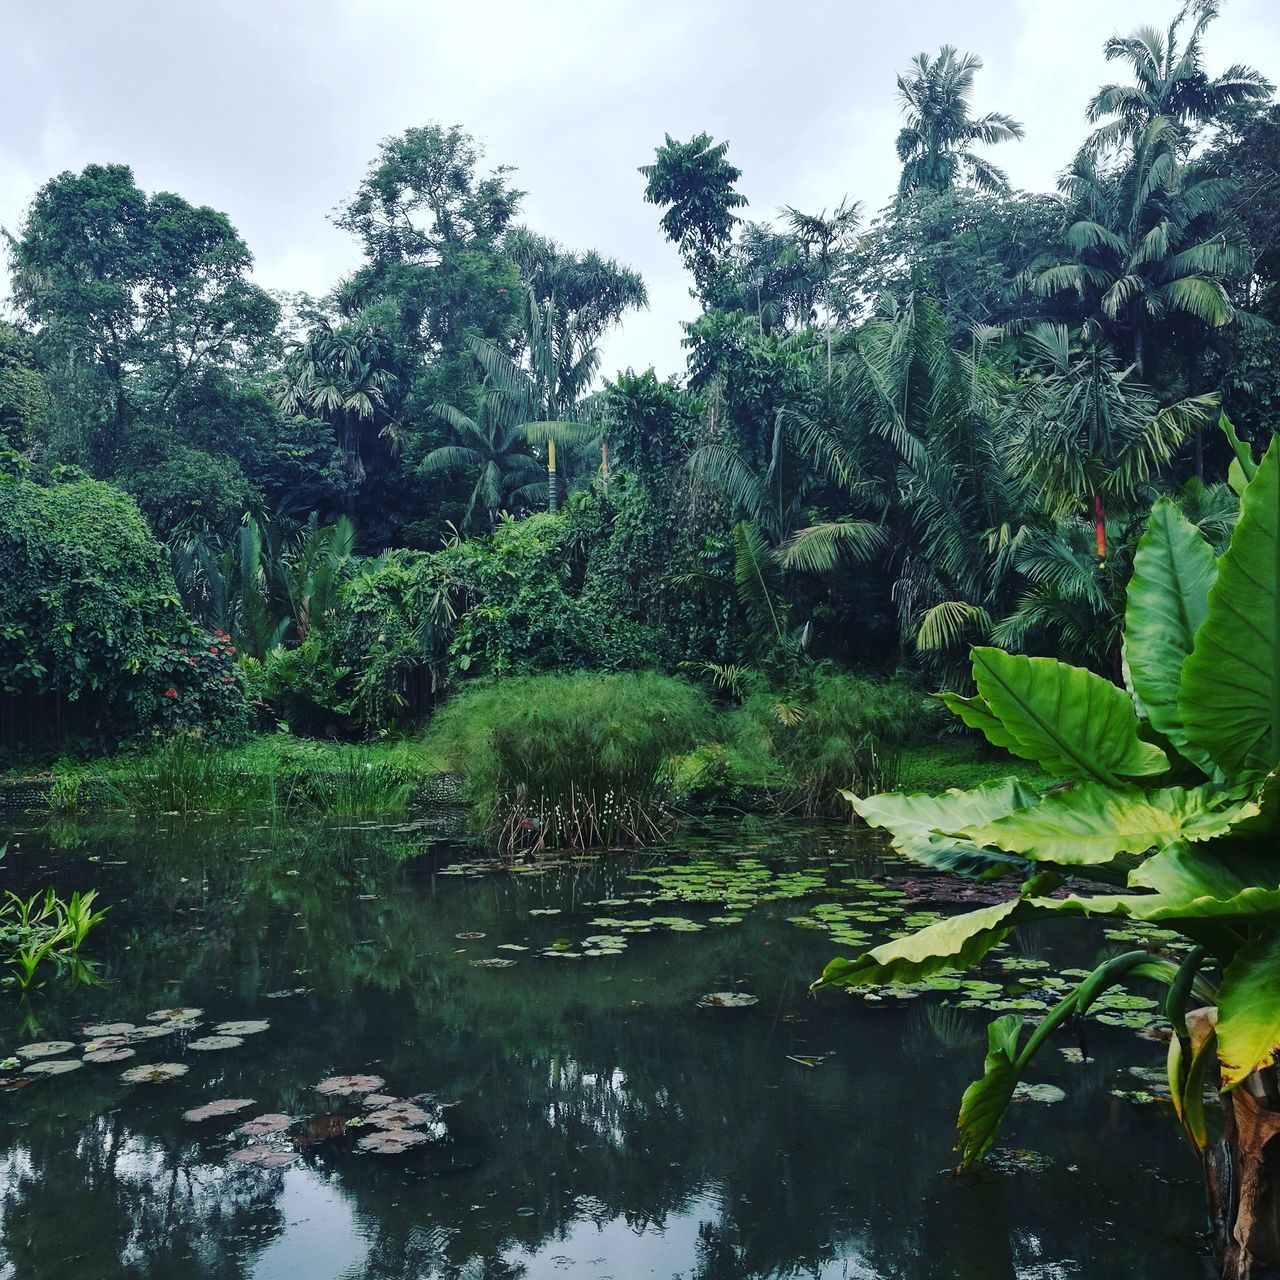 Nature Green Color No People Plant Outdoors Beauty In Nature Day Water Tree Reflection Sky Growth Scenics Jungle Trip Zen Travel Naturelovers INDONESIA